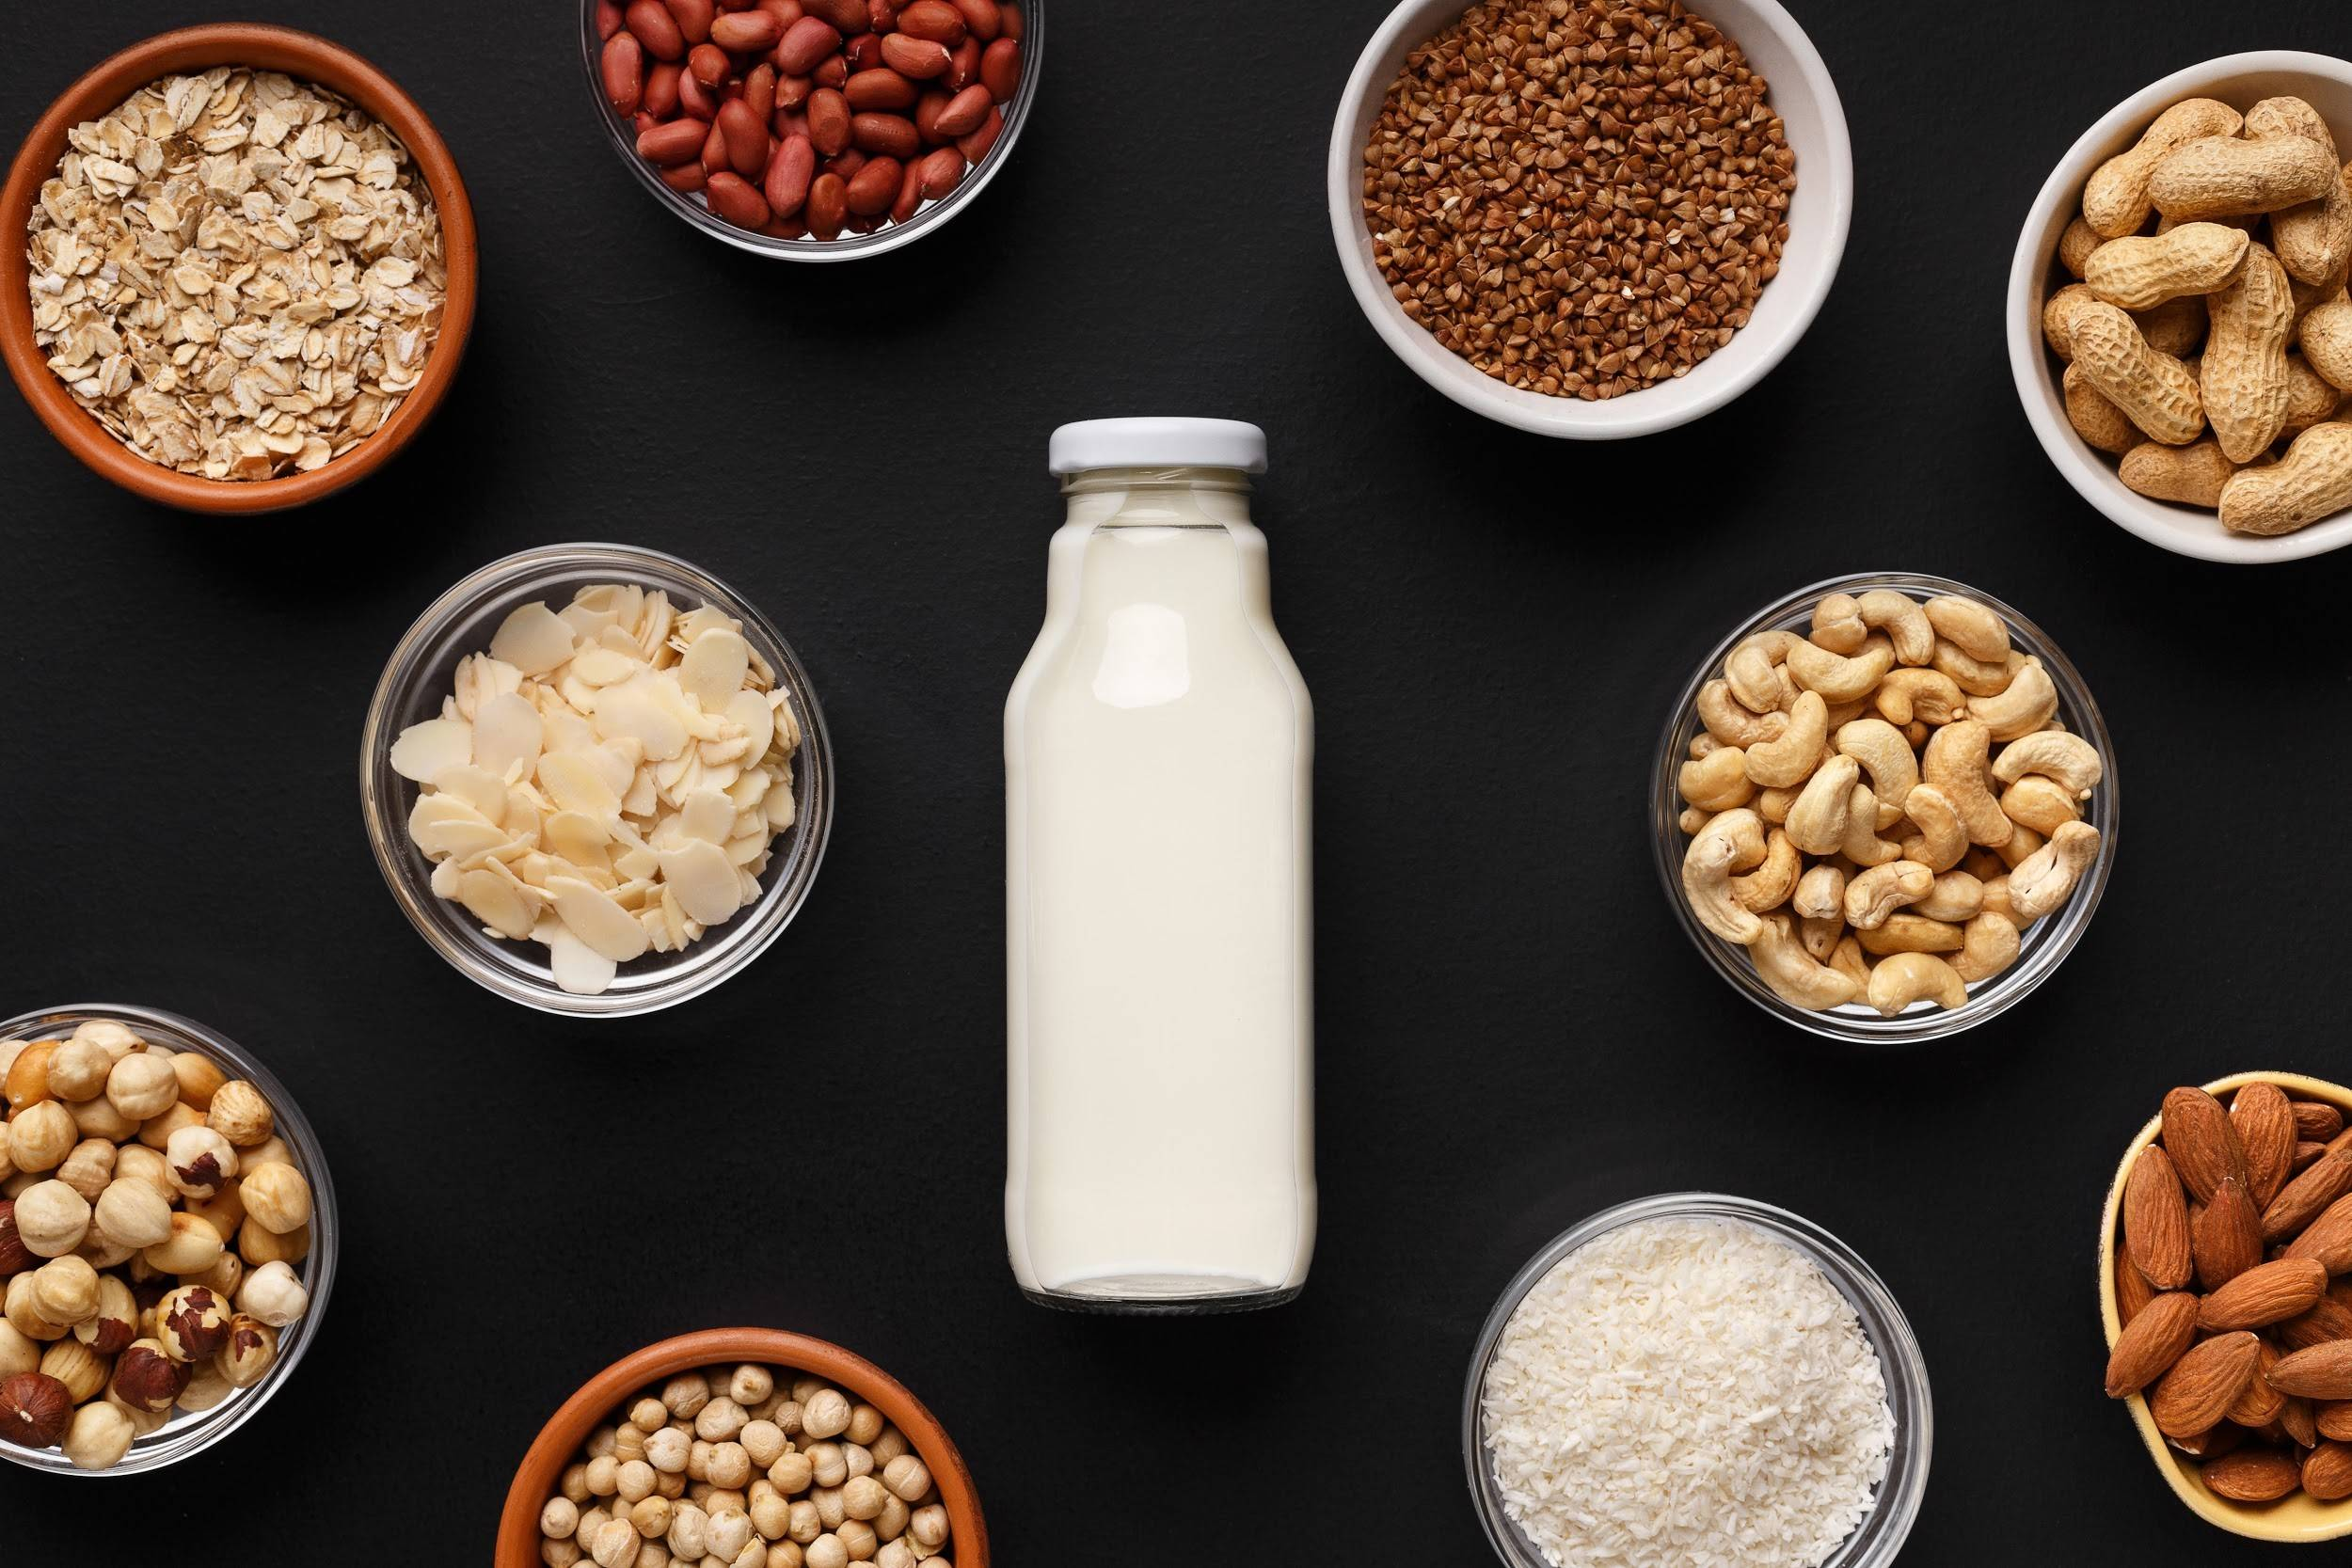 Nut Milks and Your Health